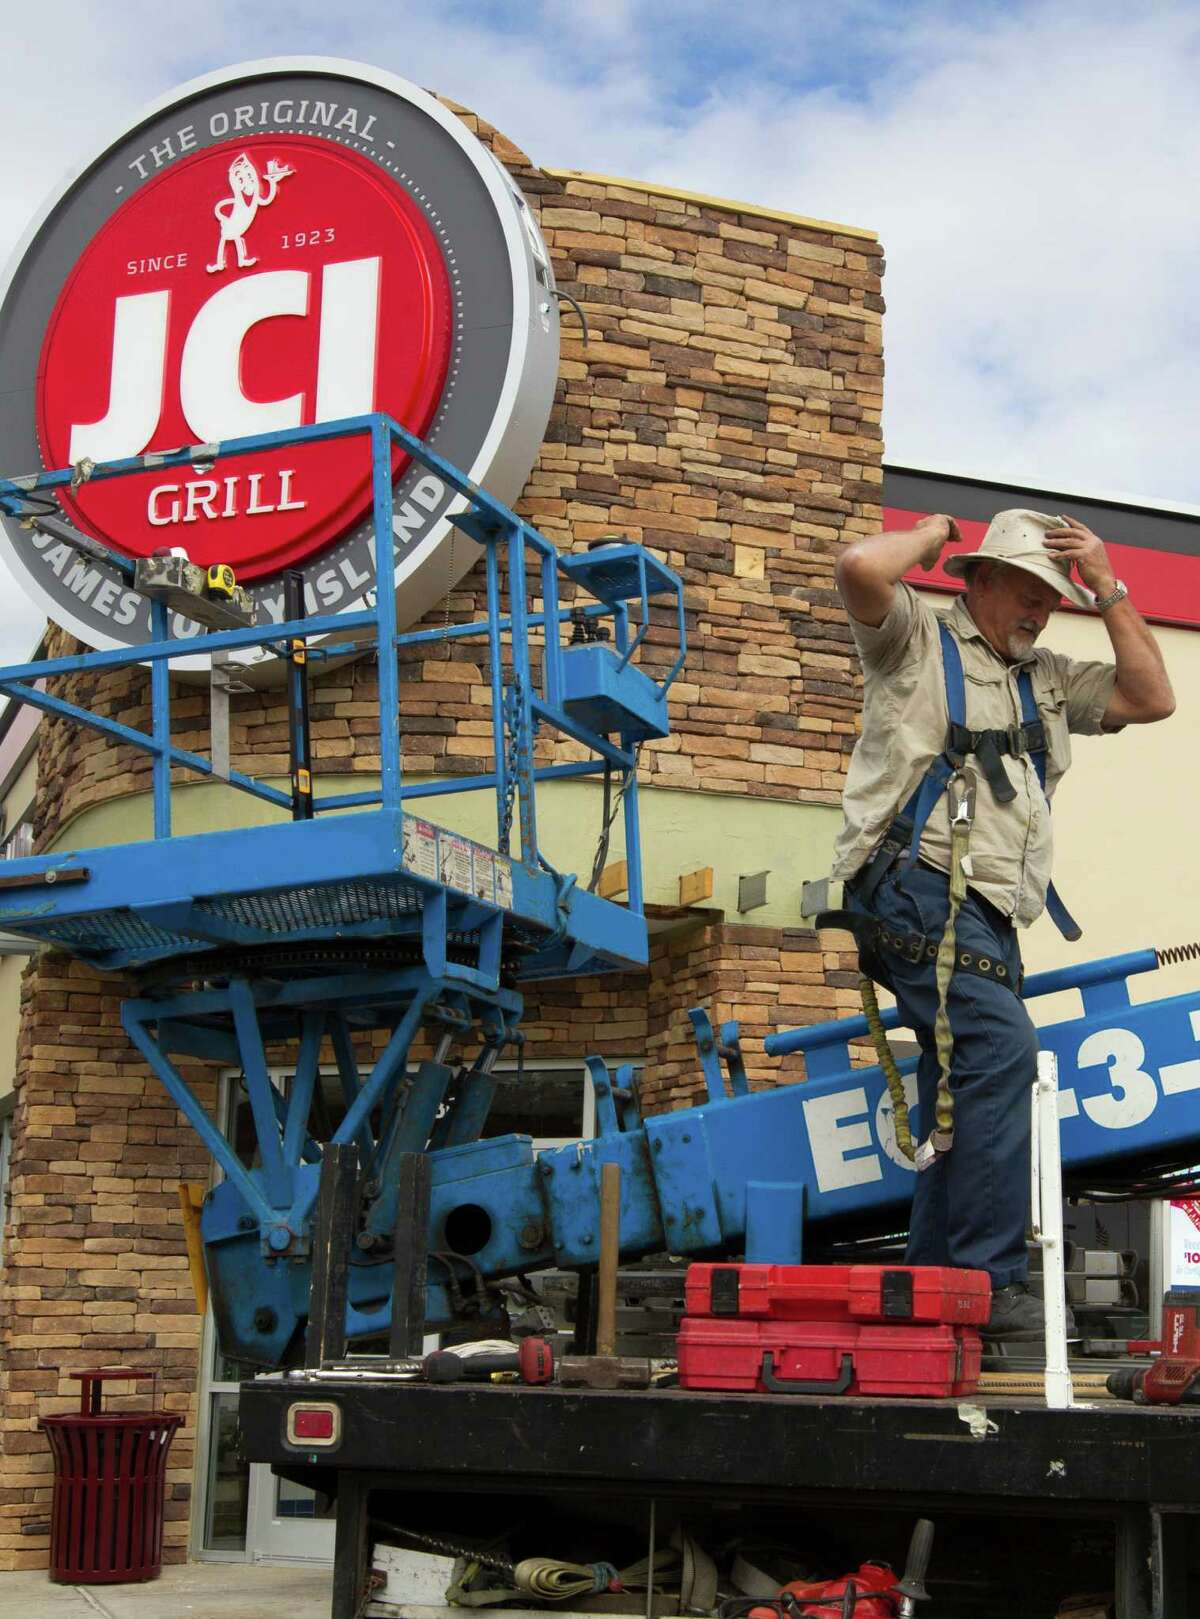 Sign Factory employee Jim Cox comes down off a crane after installing the new JCI Grill sign on the James Coney Island off of Hollister on Wednesday, Nov. 20, 2013, in Houston. The company is gradually changing its name and rebranding itself for a more modern day experience. It will also be expanding its menu.